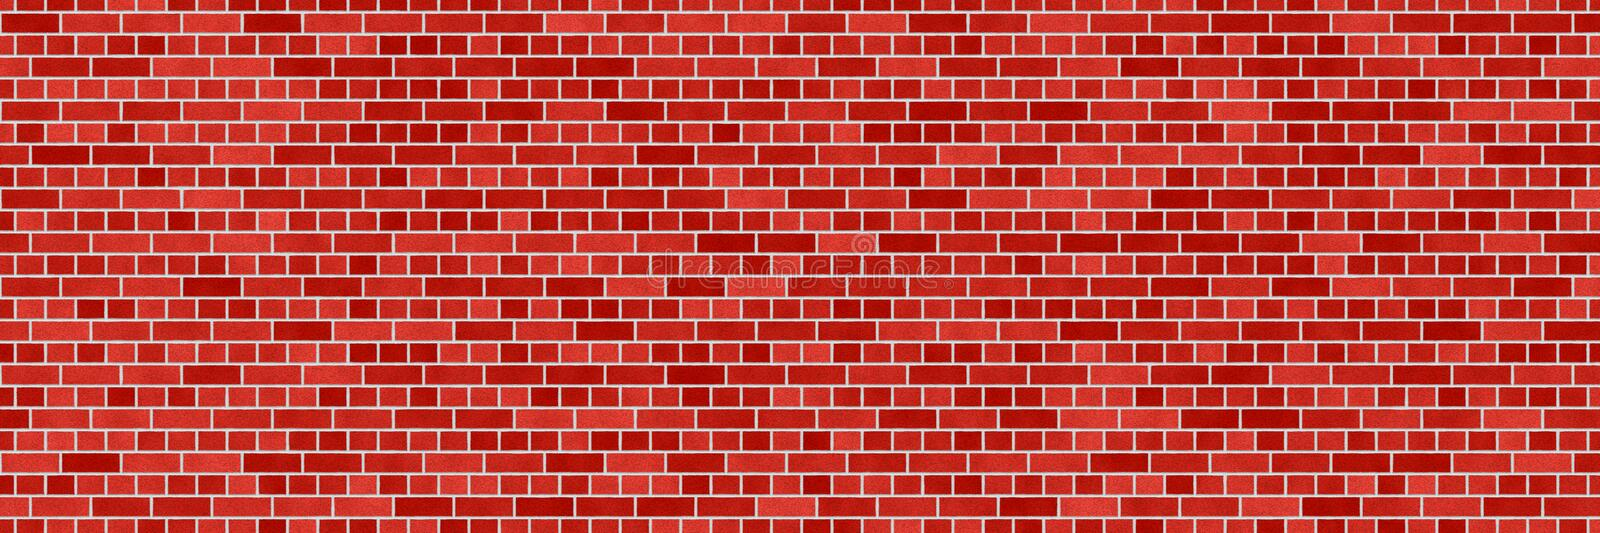 Red brown brick wall abstract background. Texture of bricks. Decorative stone. Realistic wide illustration. Template design for web banners vector illustration